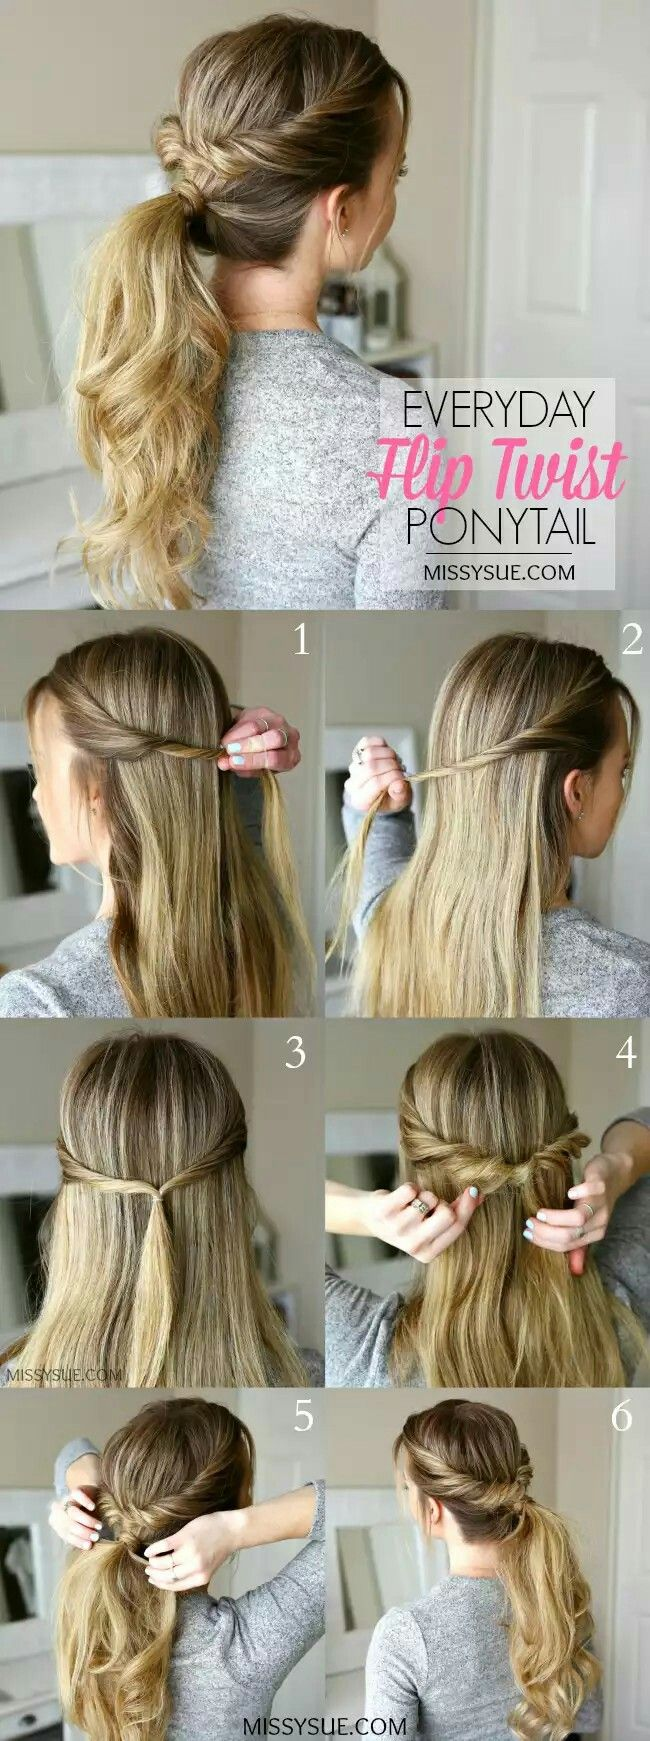 #hairstyles, lobs hair, lobs haircut, hair, hair stypes, tips, #lobshair, wedding hair styes, top hair tutorial, curly hair, dyed hair, natural hair, famous hair styles, hair care, hair treatment, hair extension and more